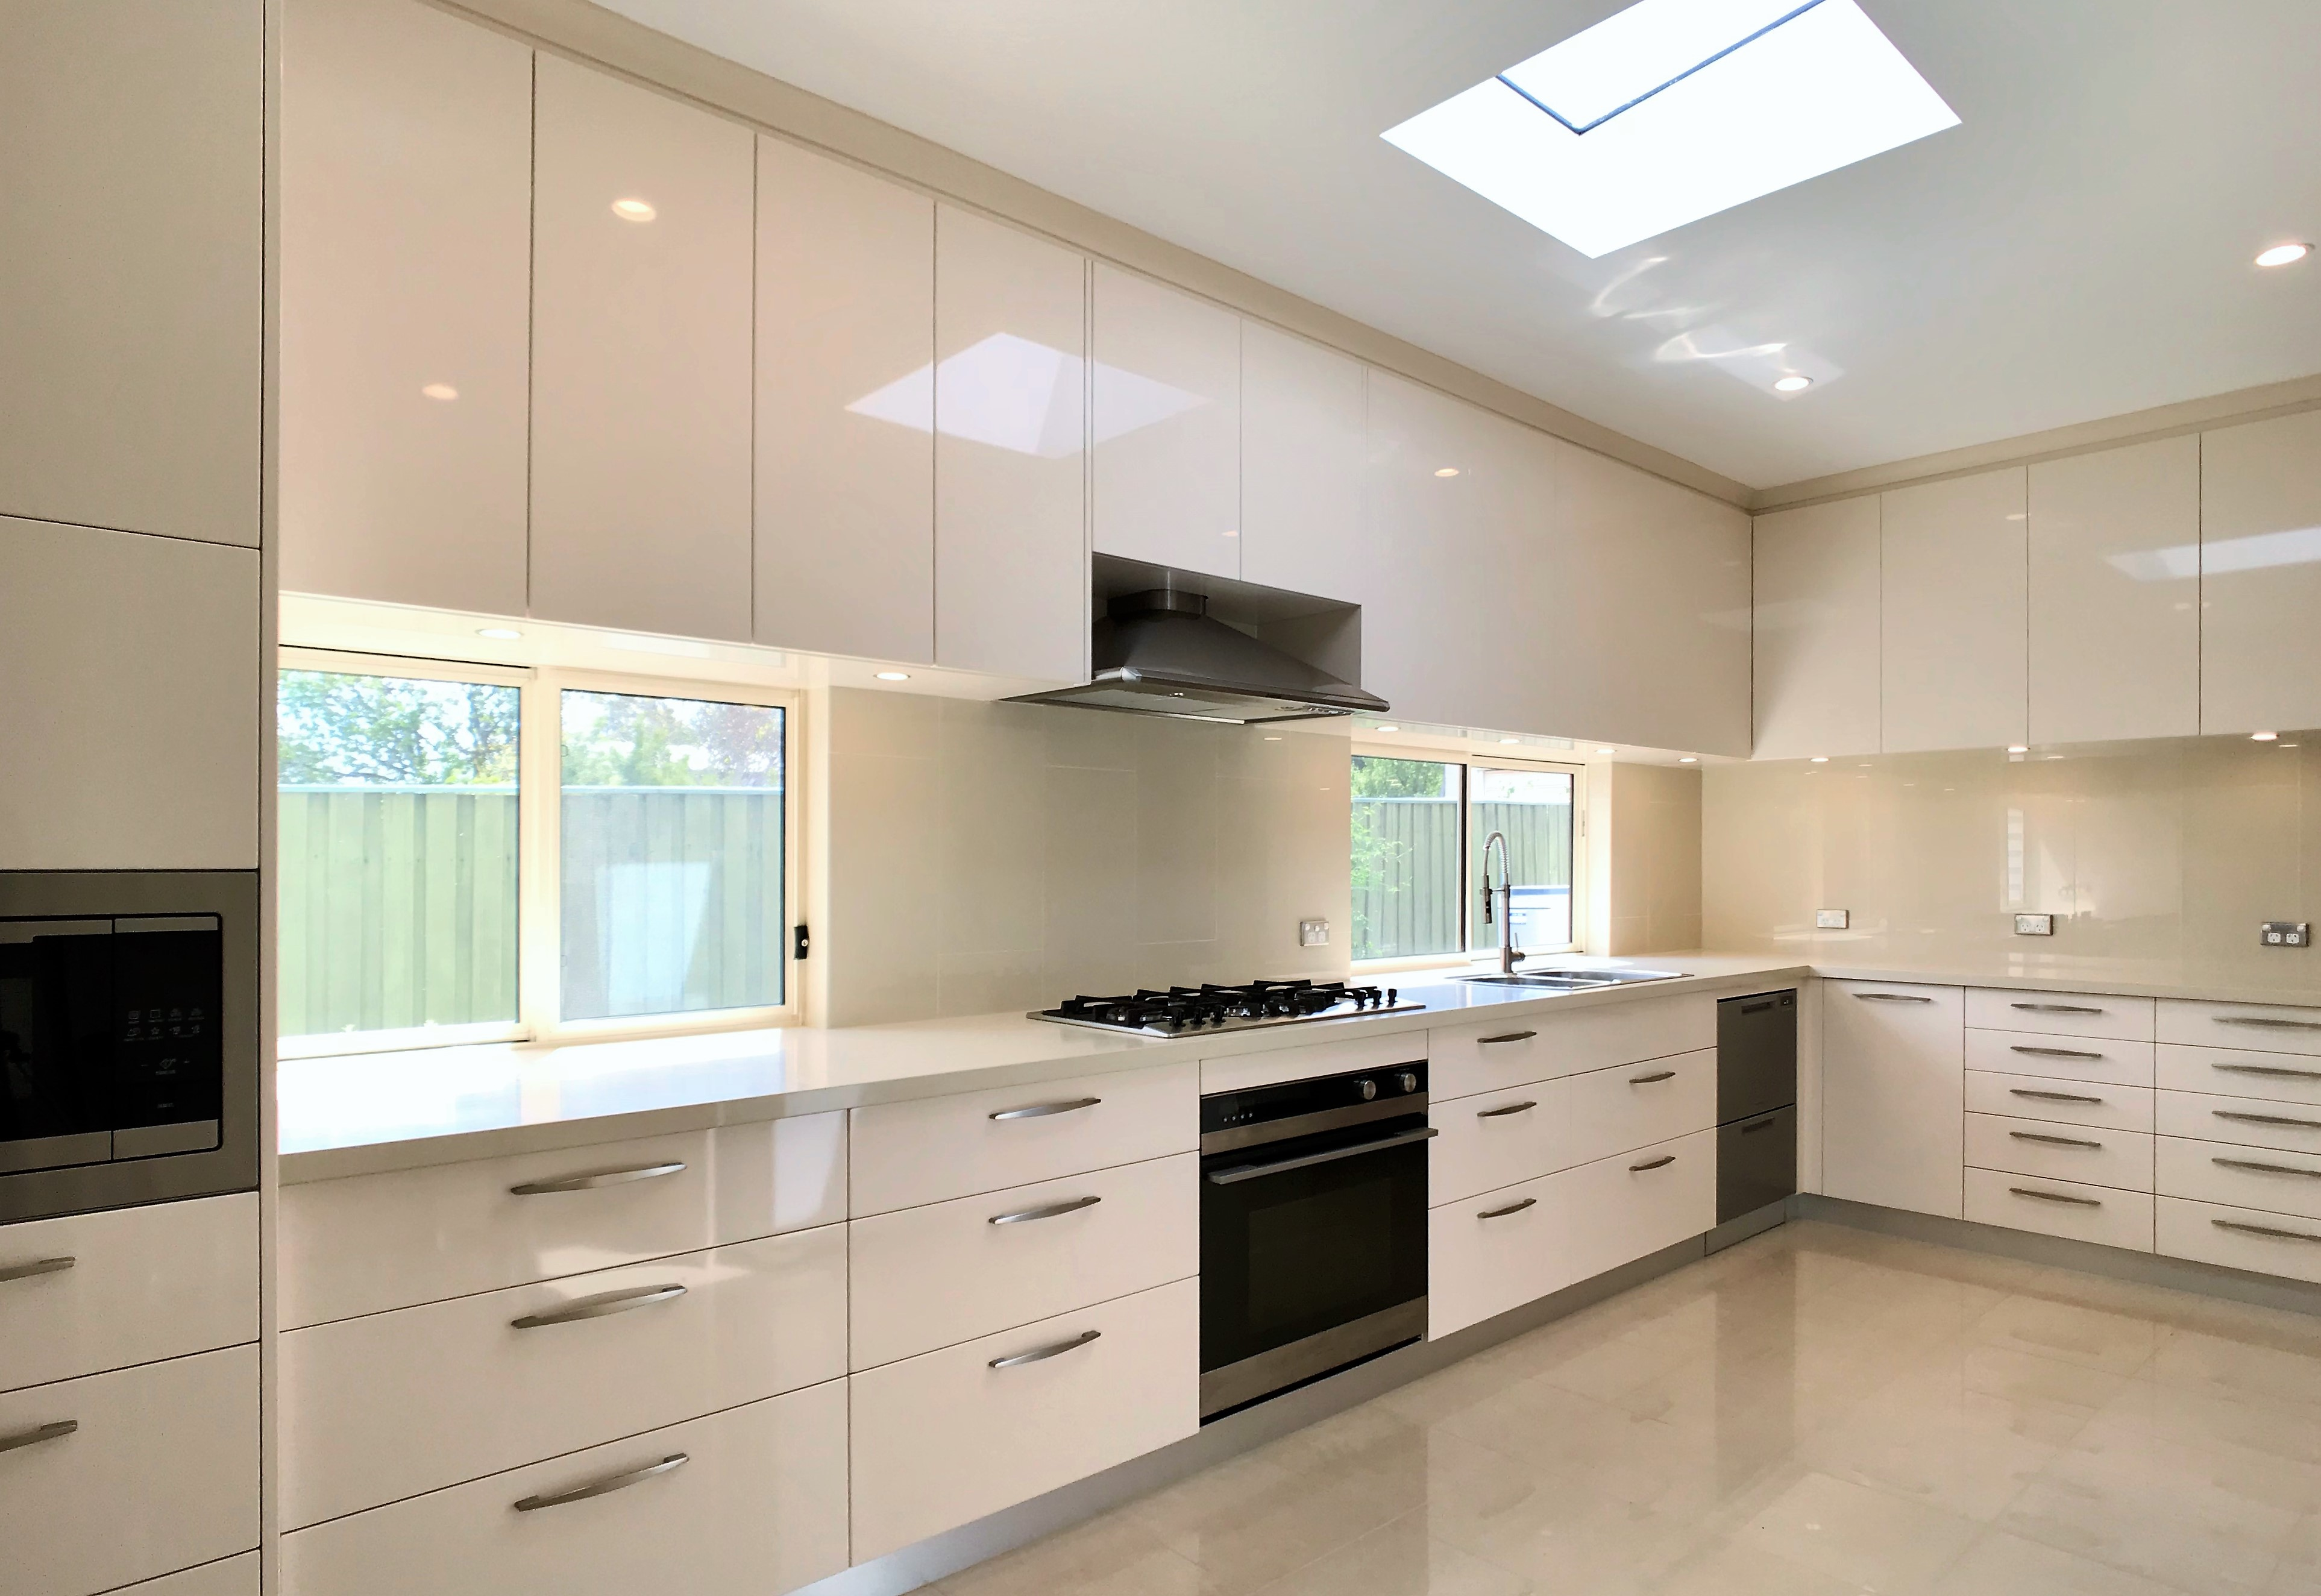 White color themed spacious kitchen deigned and renovated by Paramount Creations.